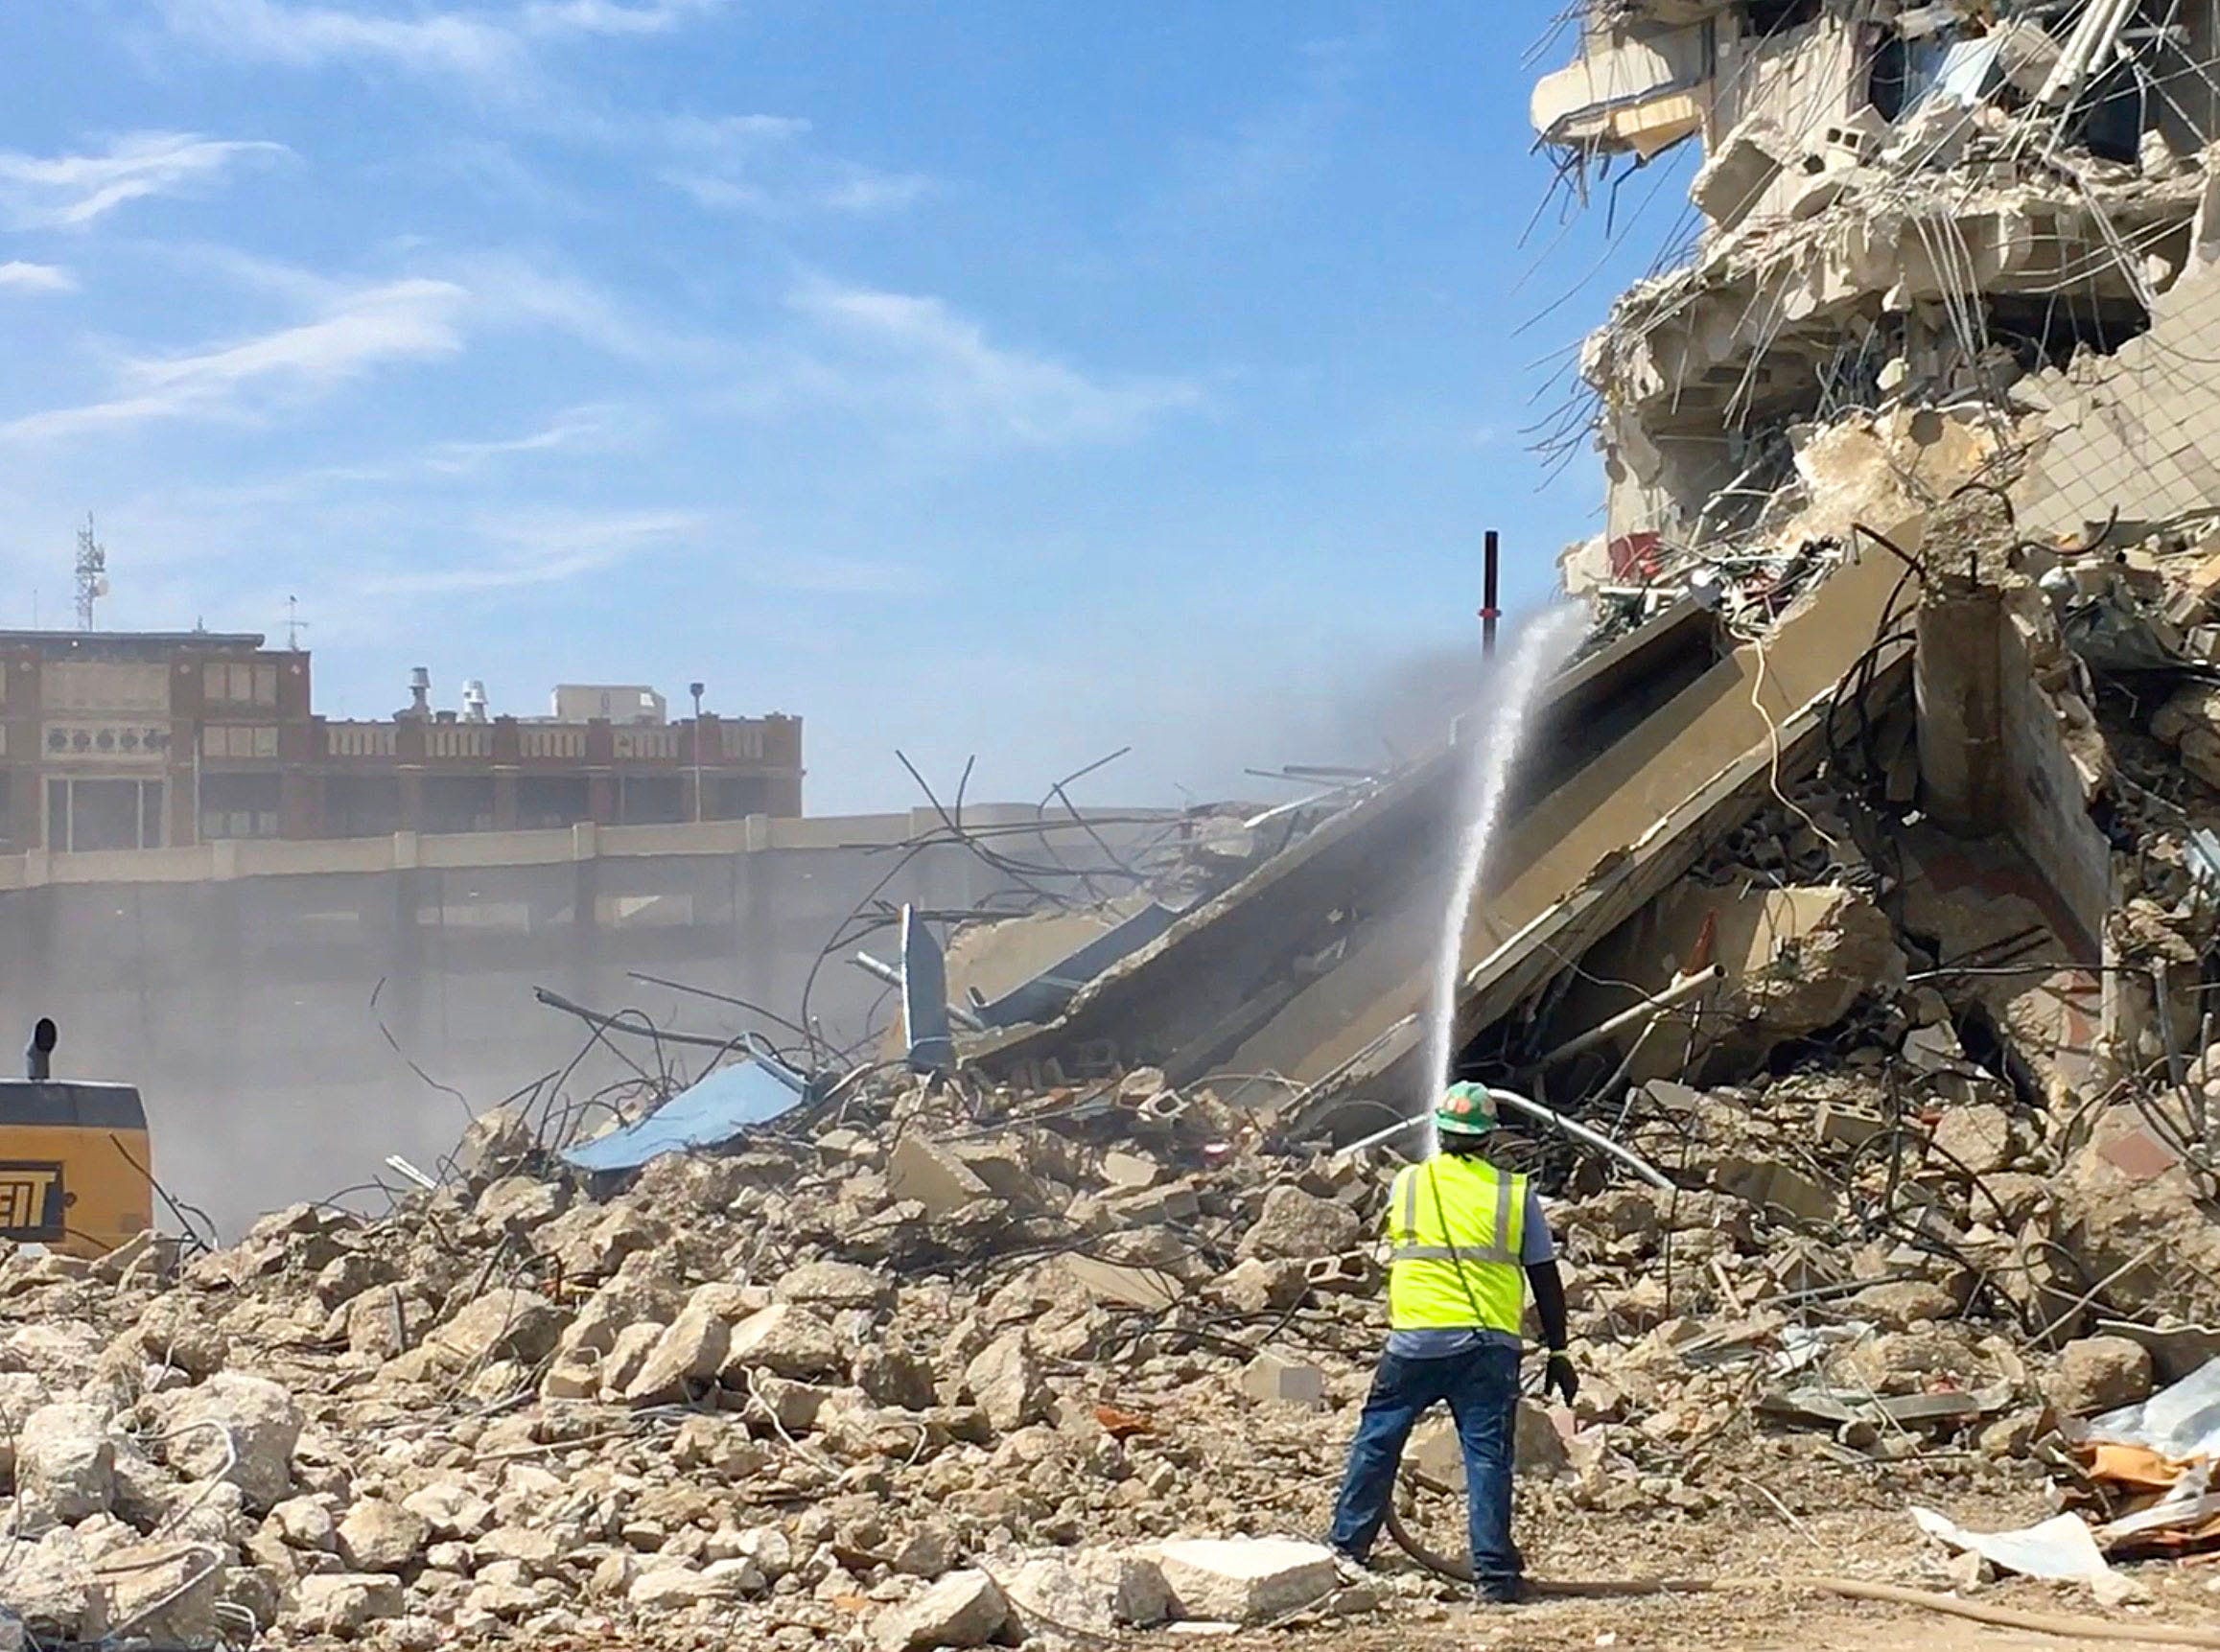 Water is sprayed to reduce dust as work continues on the demolition.